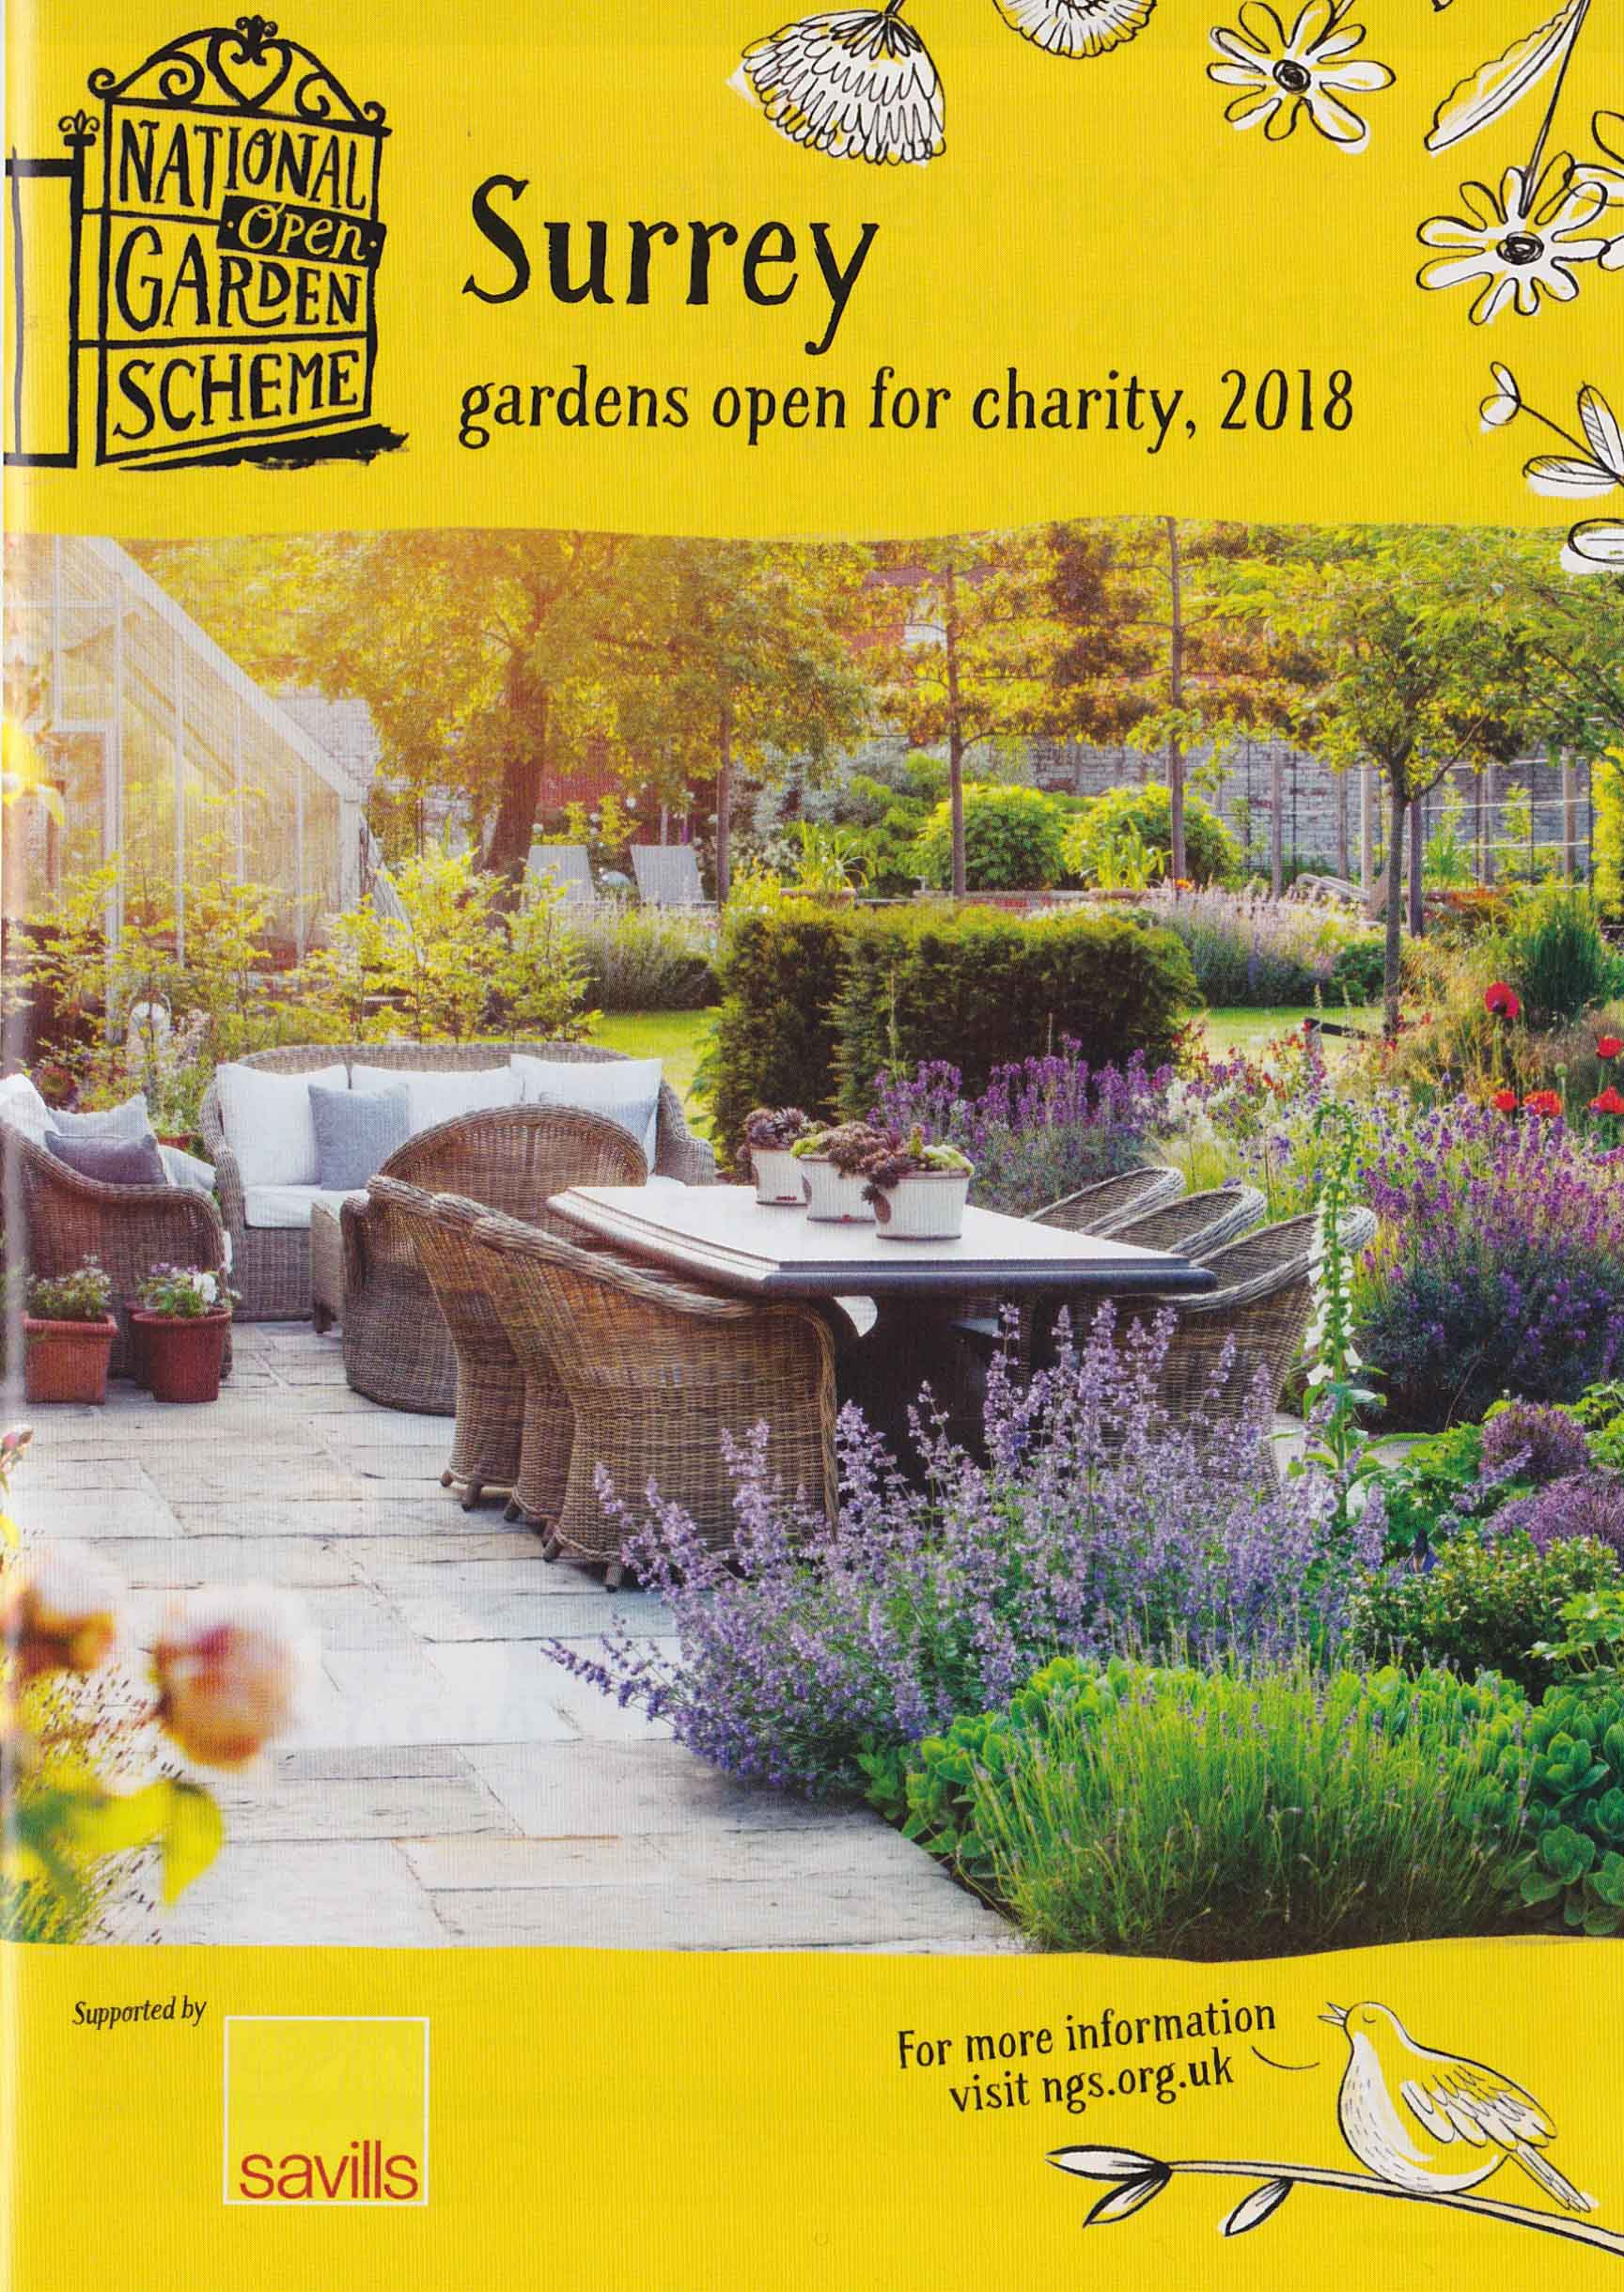 Amazing No Matter, Imagining That Easter Sunday Weather Will Be Much Like Today.  Two Surrey Gardens Open Tommorrow For The National Garden Open Scheme Both  Offer ...